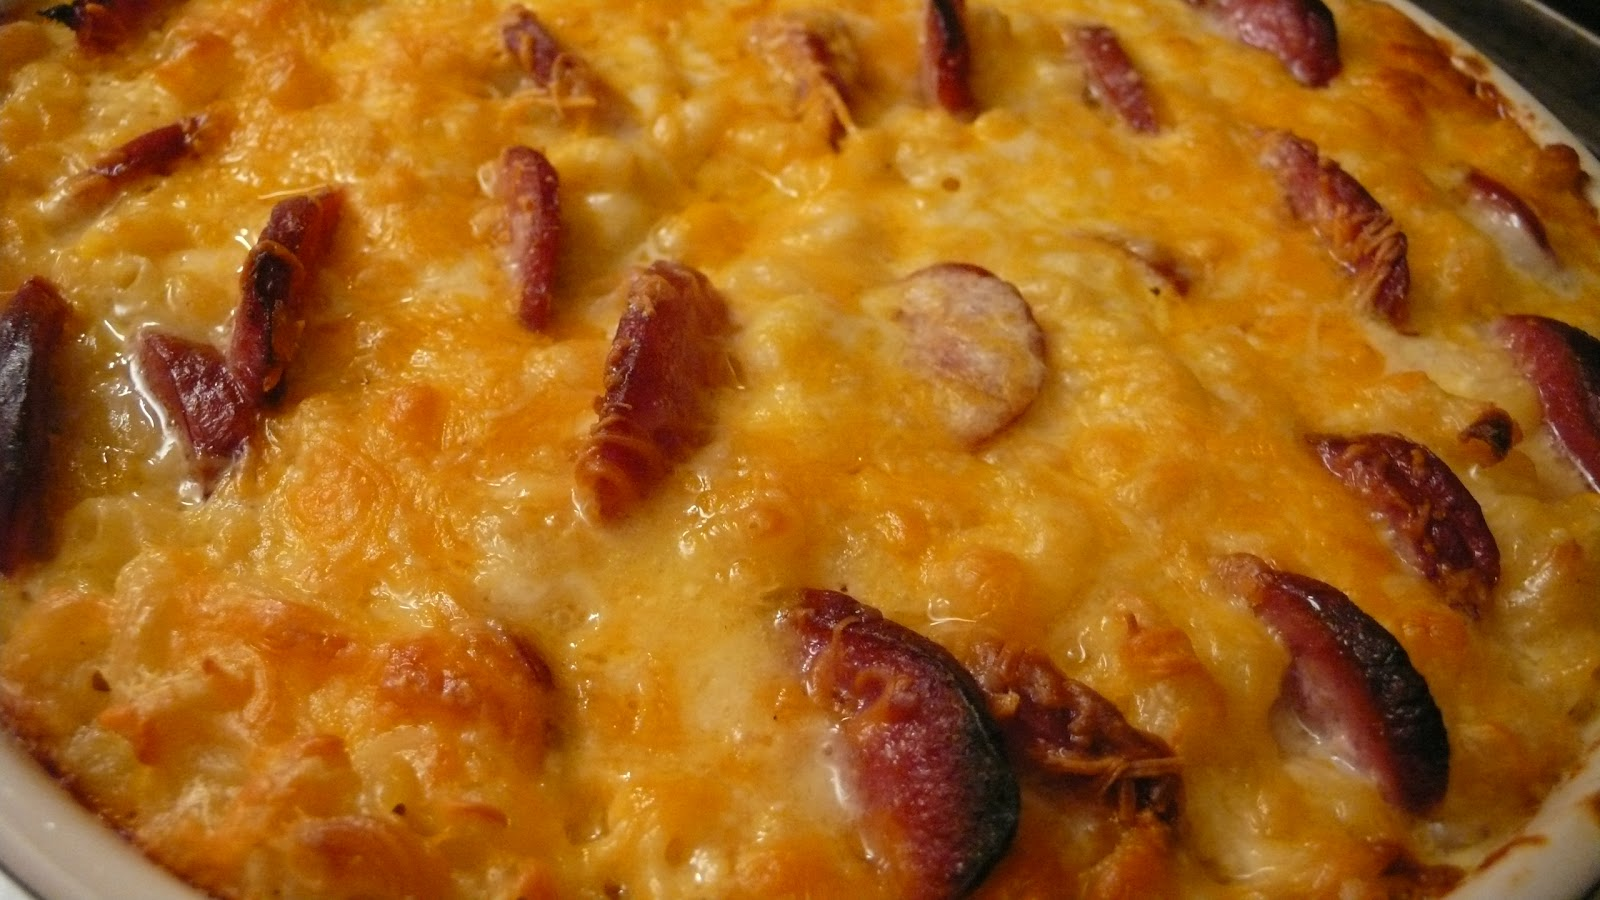 Joyously Domestic: Smoked Sausage Macaroni and Cheese